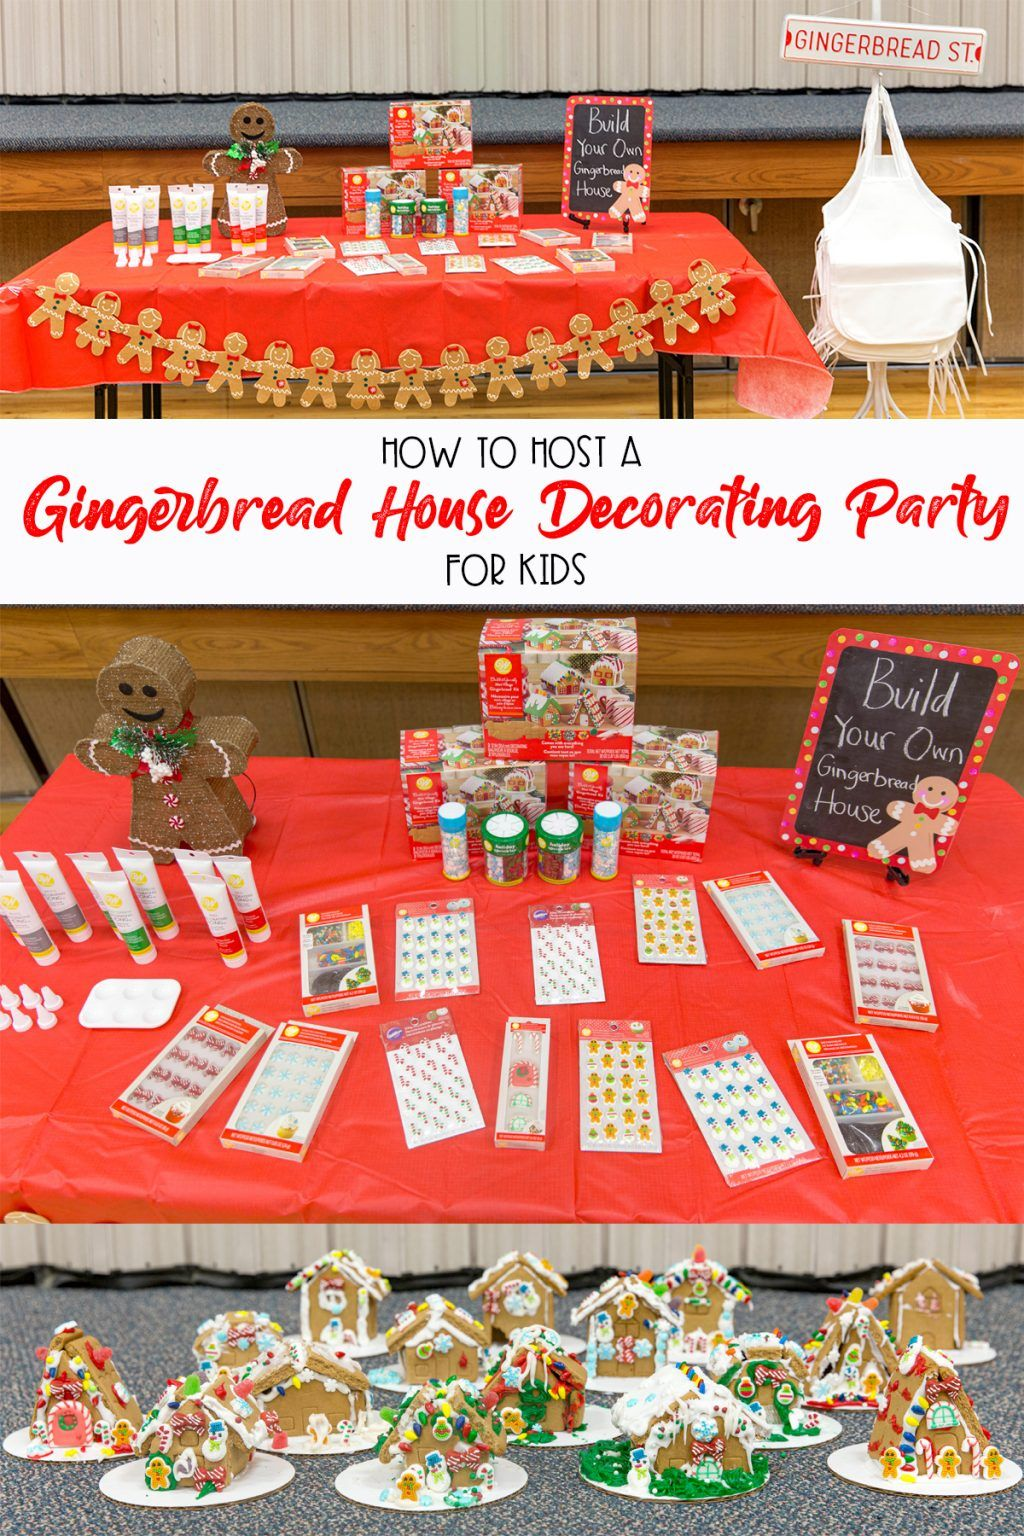 How To Host A Gingerbread House Decorating Party For Kids